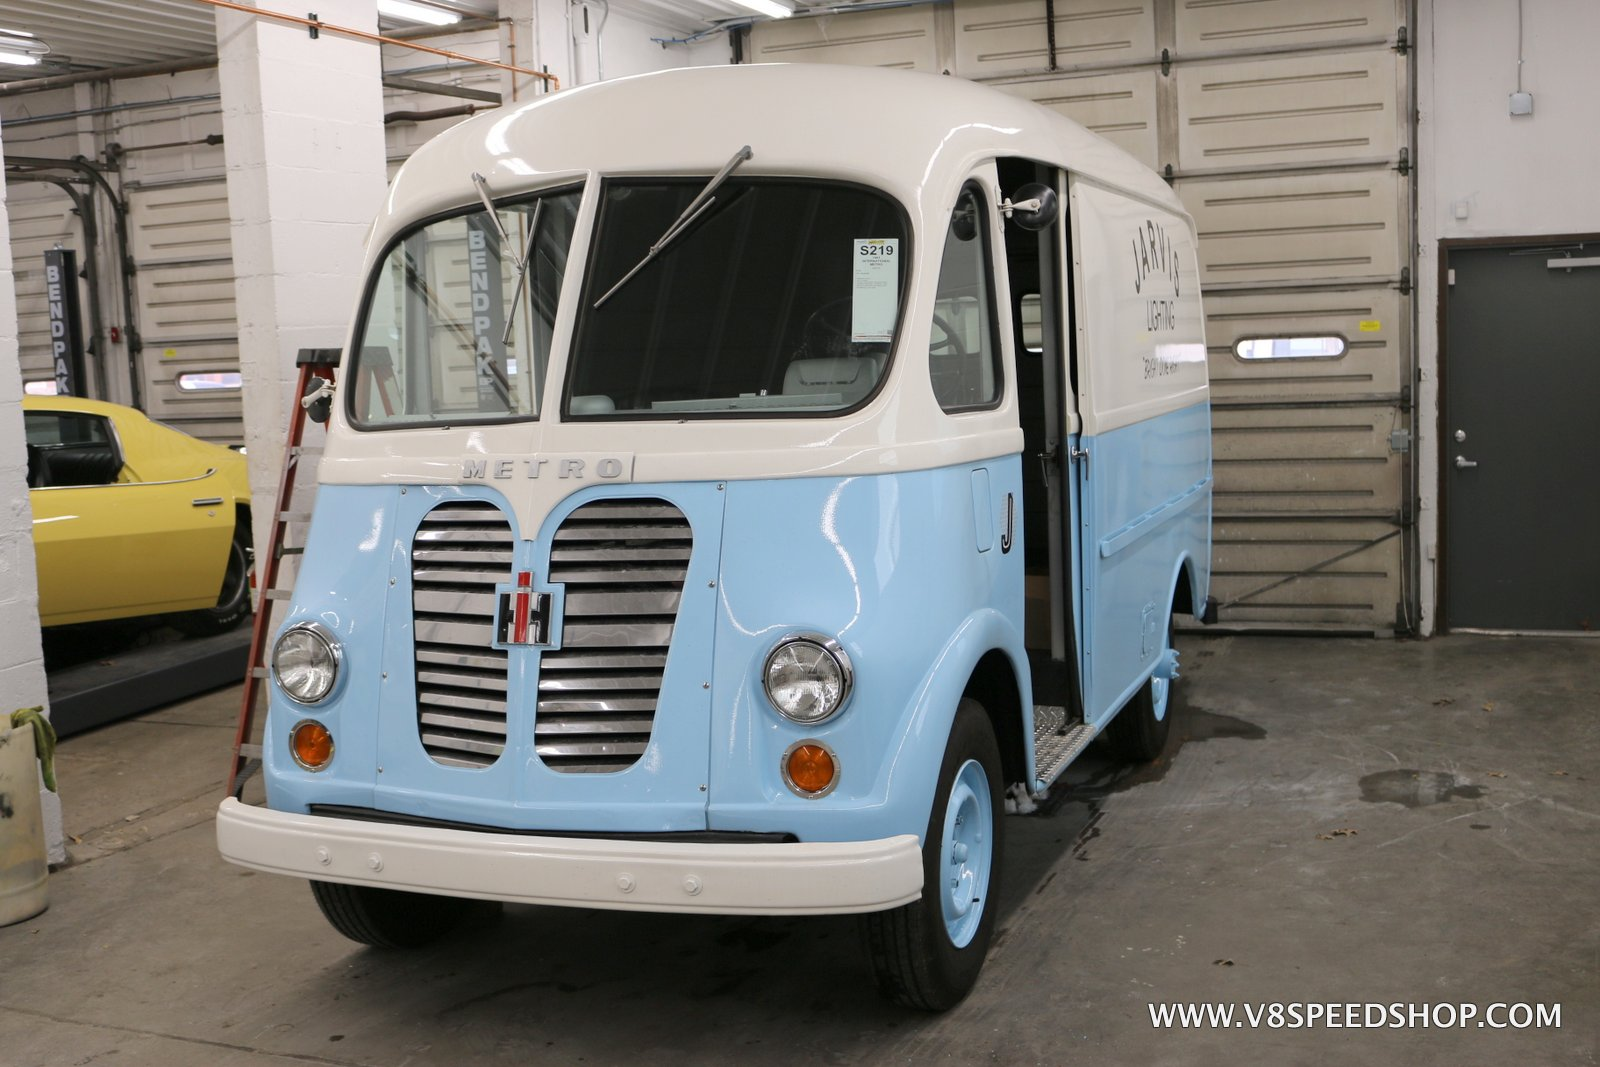 1961 International Metro Delivery Van Modifications Photo Gallery at V8 Speed and Resto Shop